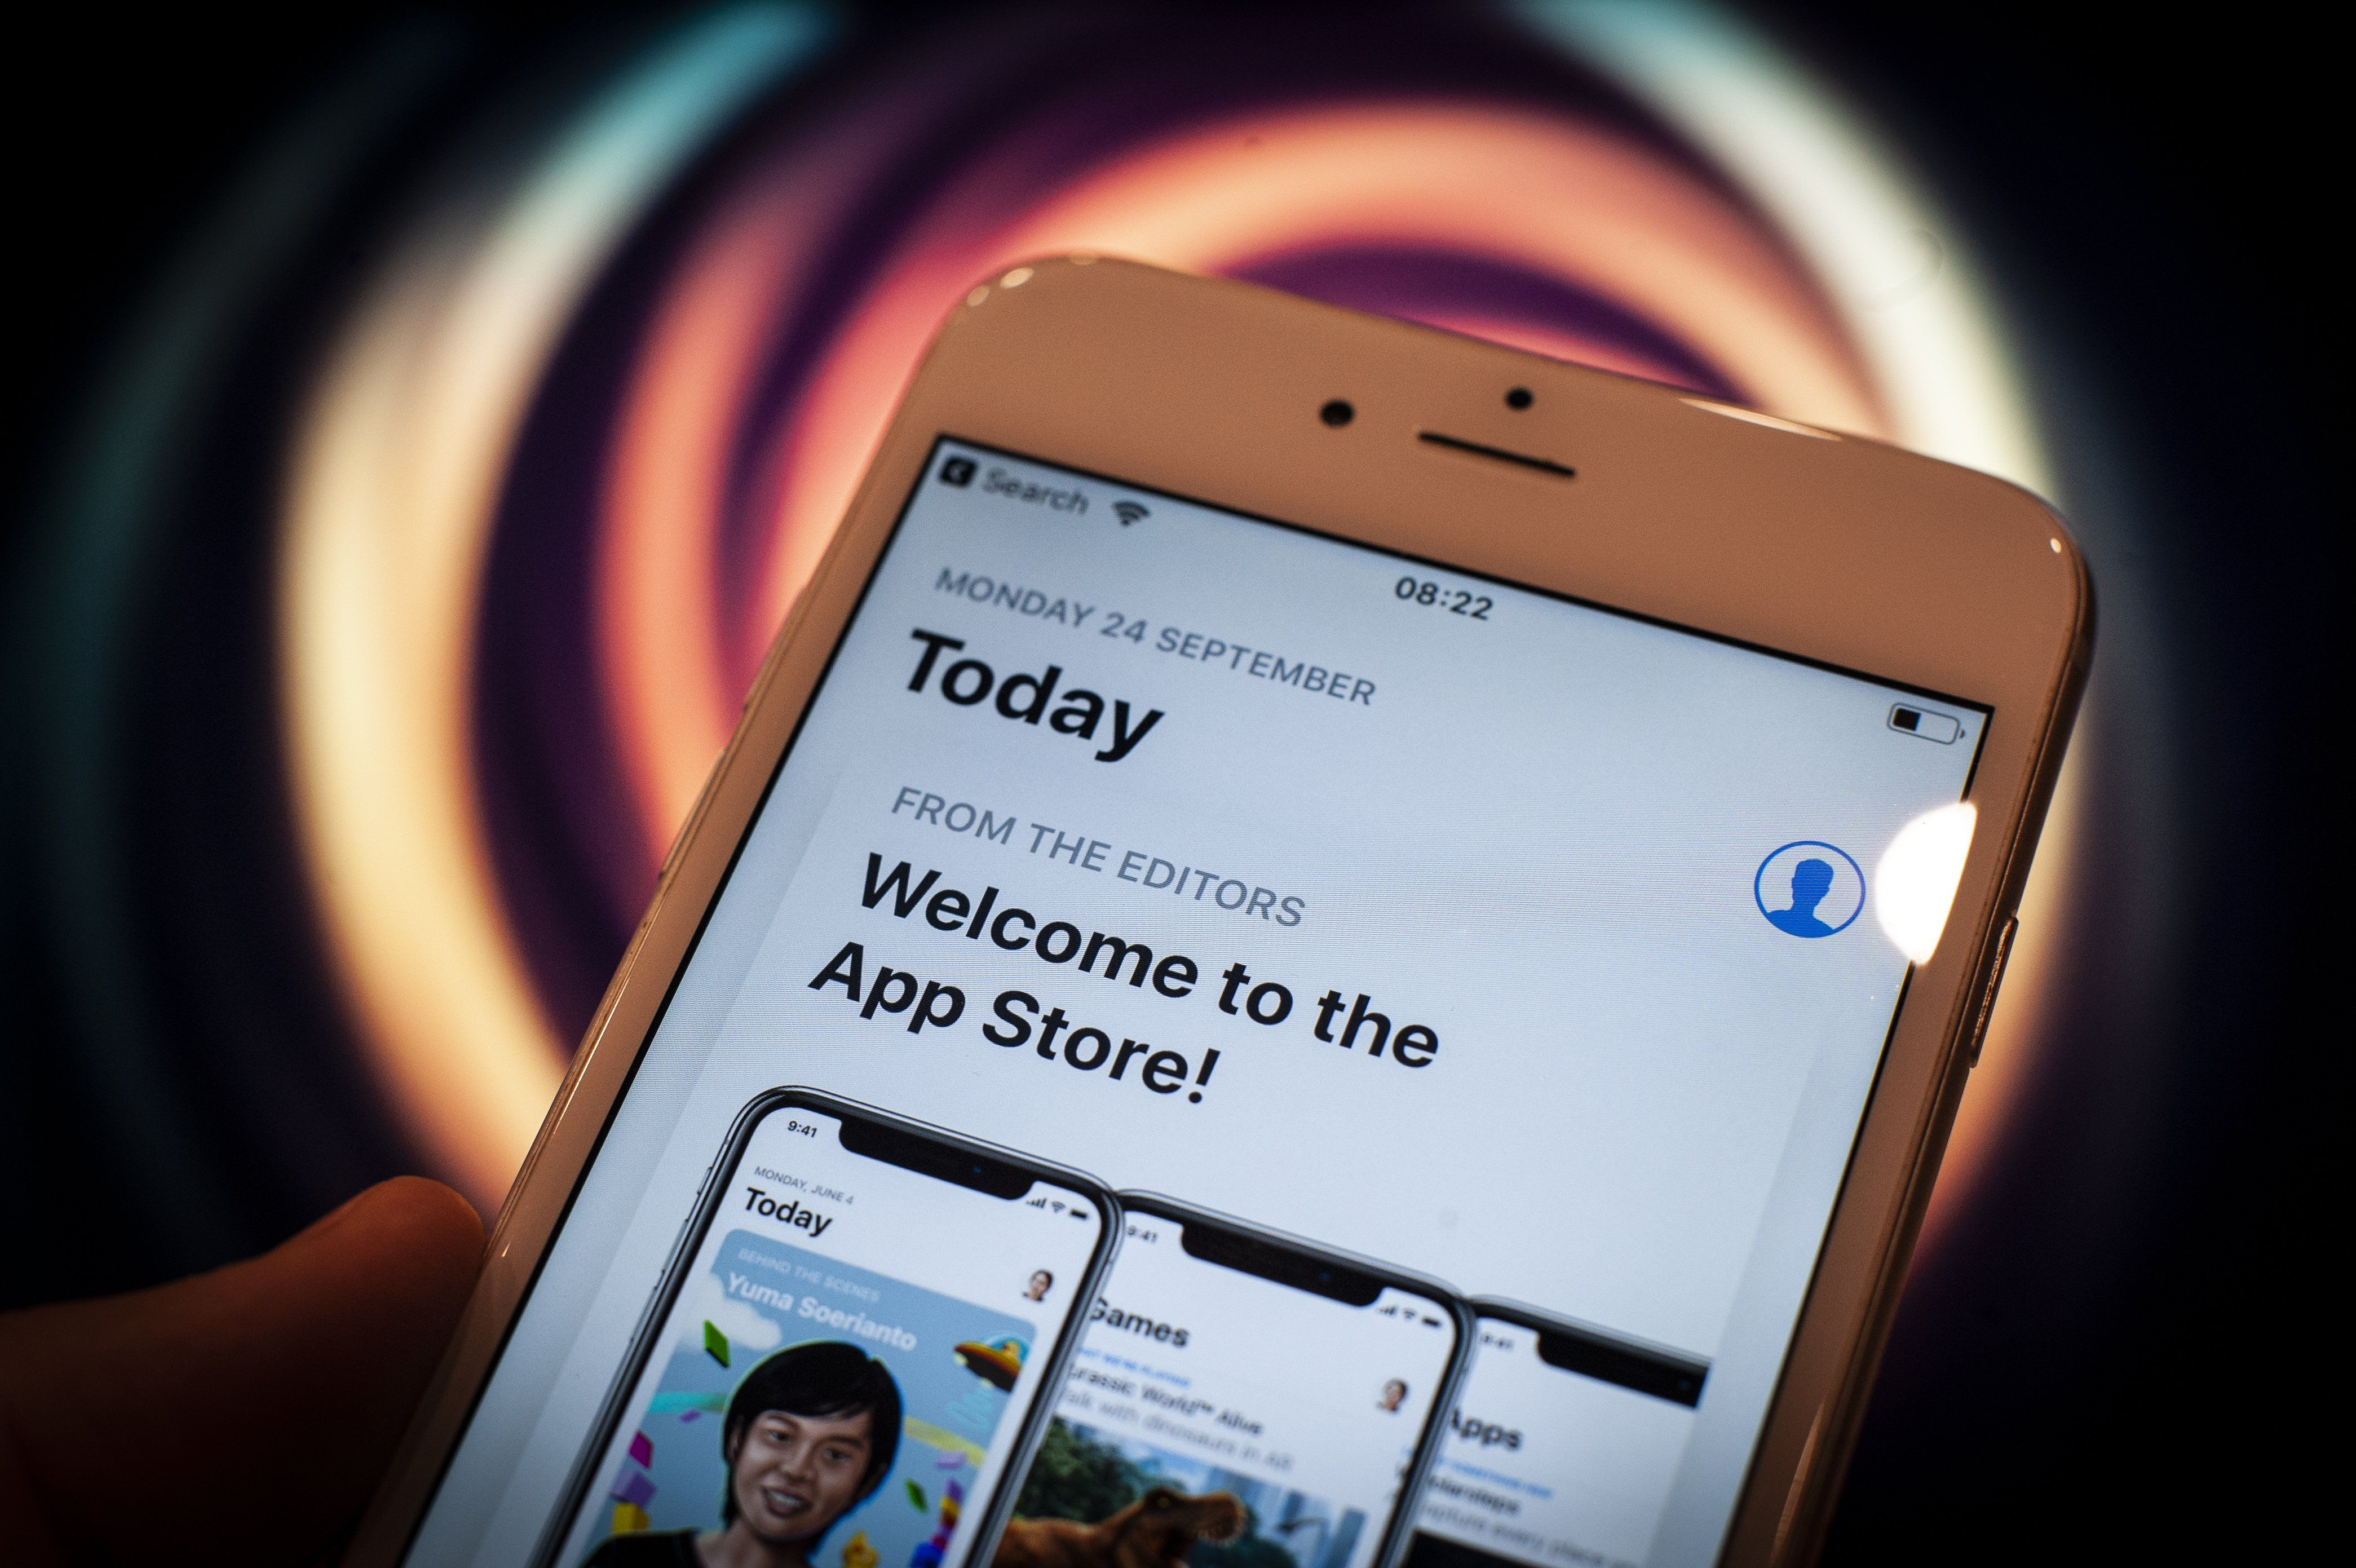 Apple Pulled Parental Control Apps 'Over Privacy Concerns